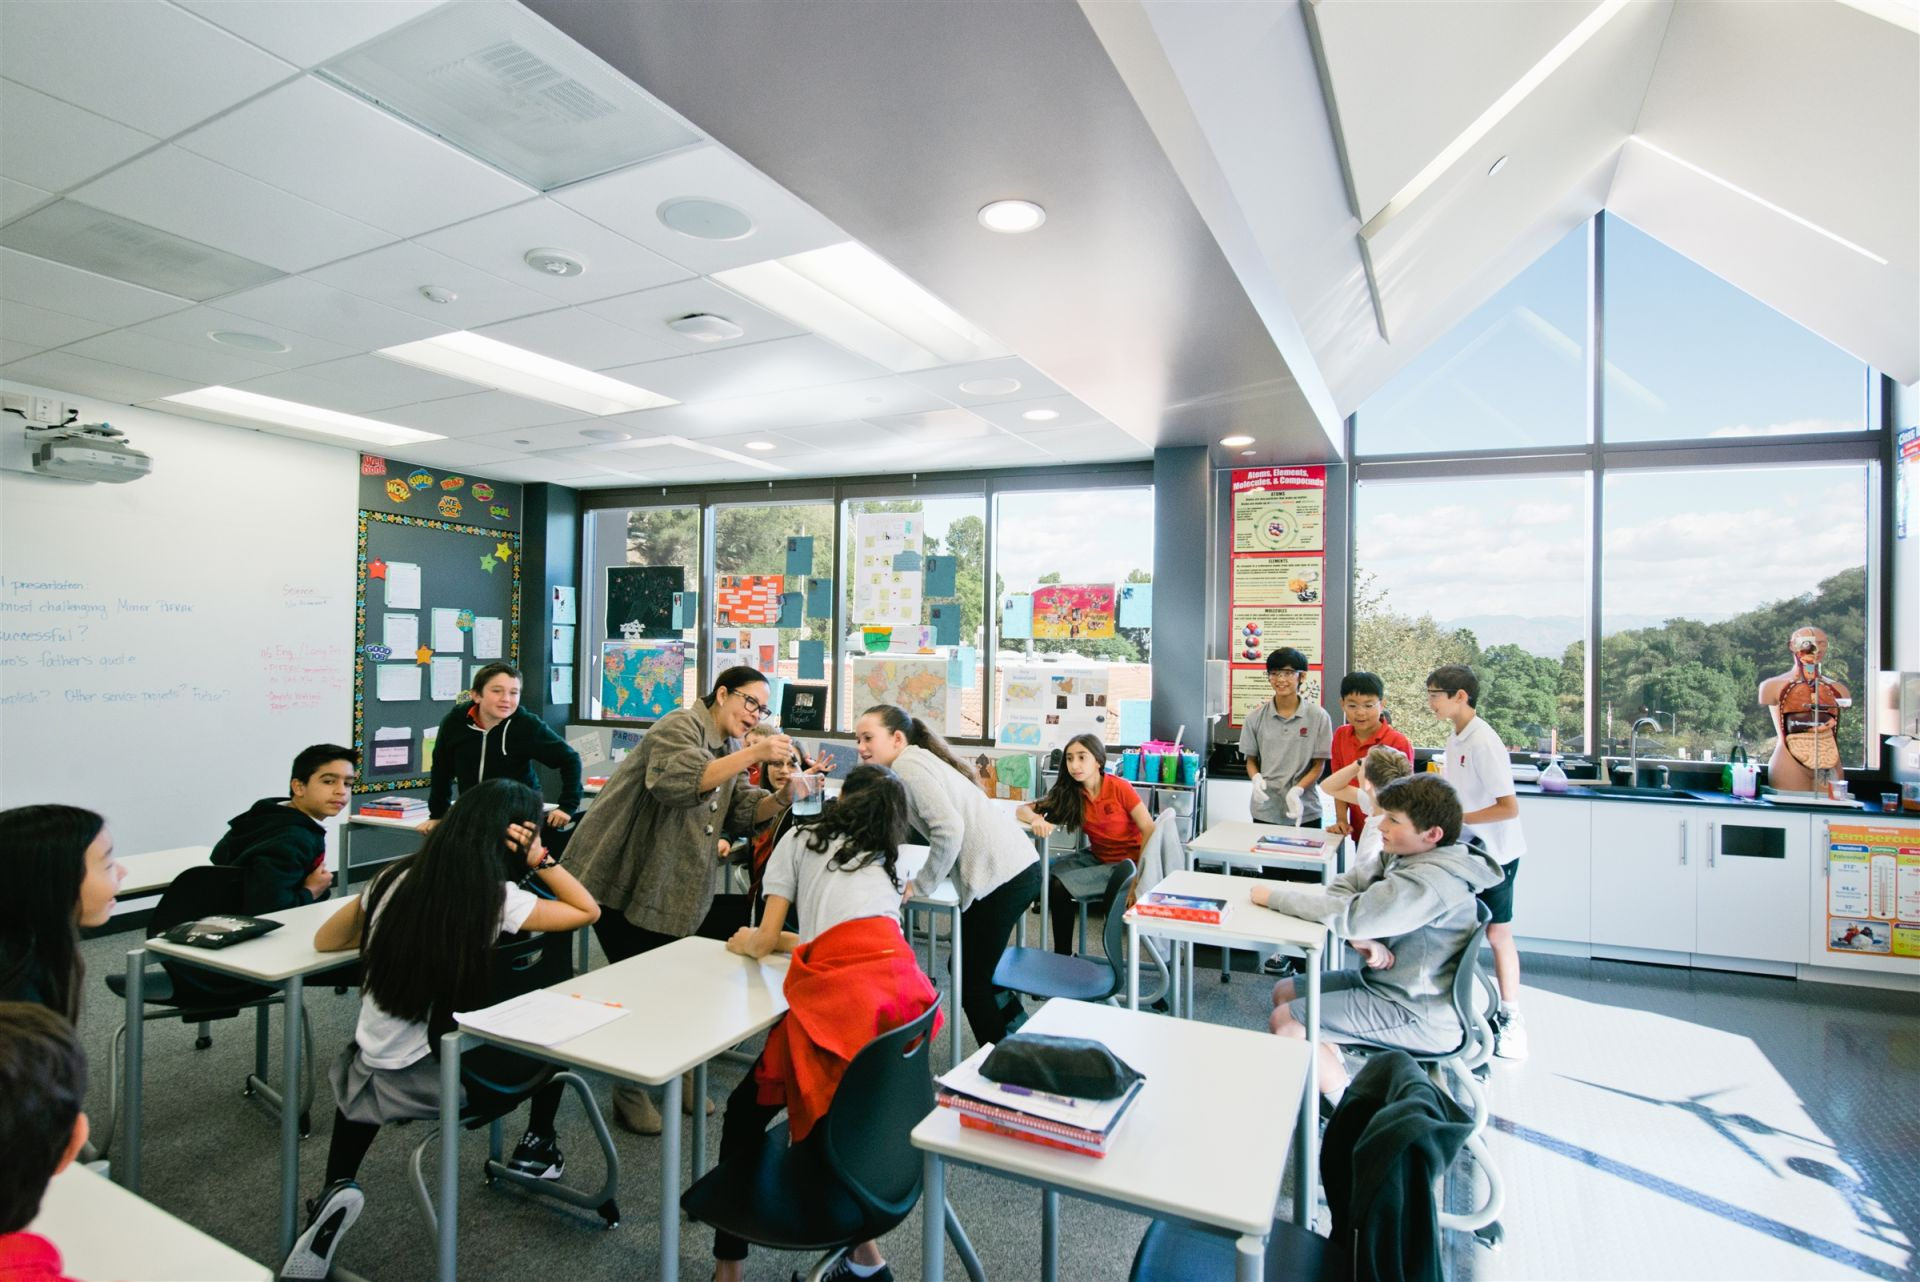 The sixth grade classrooms in The Marciano Family Academic and Performing Arts Building are set up for flexible classroom spaces: walls retract to make four classrooms into one large one.